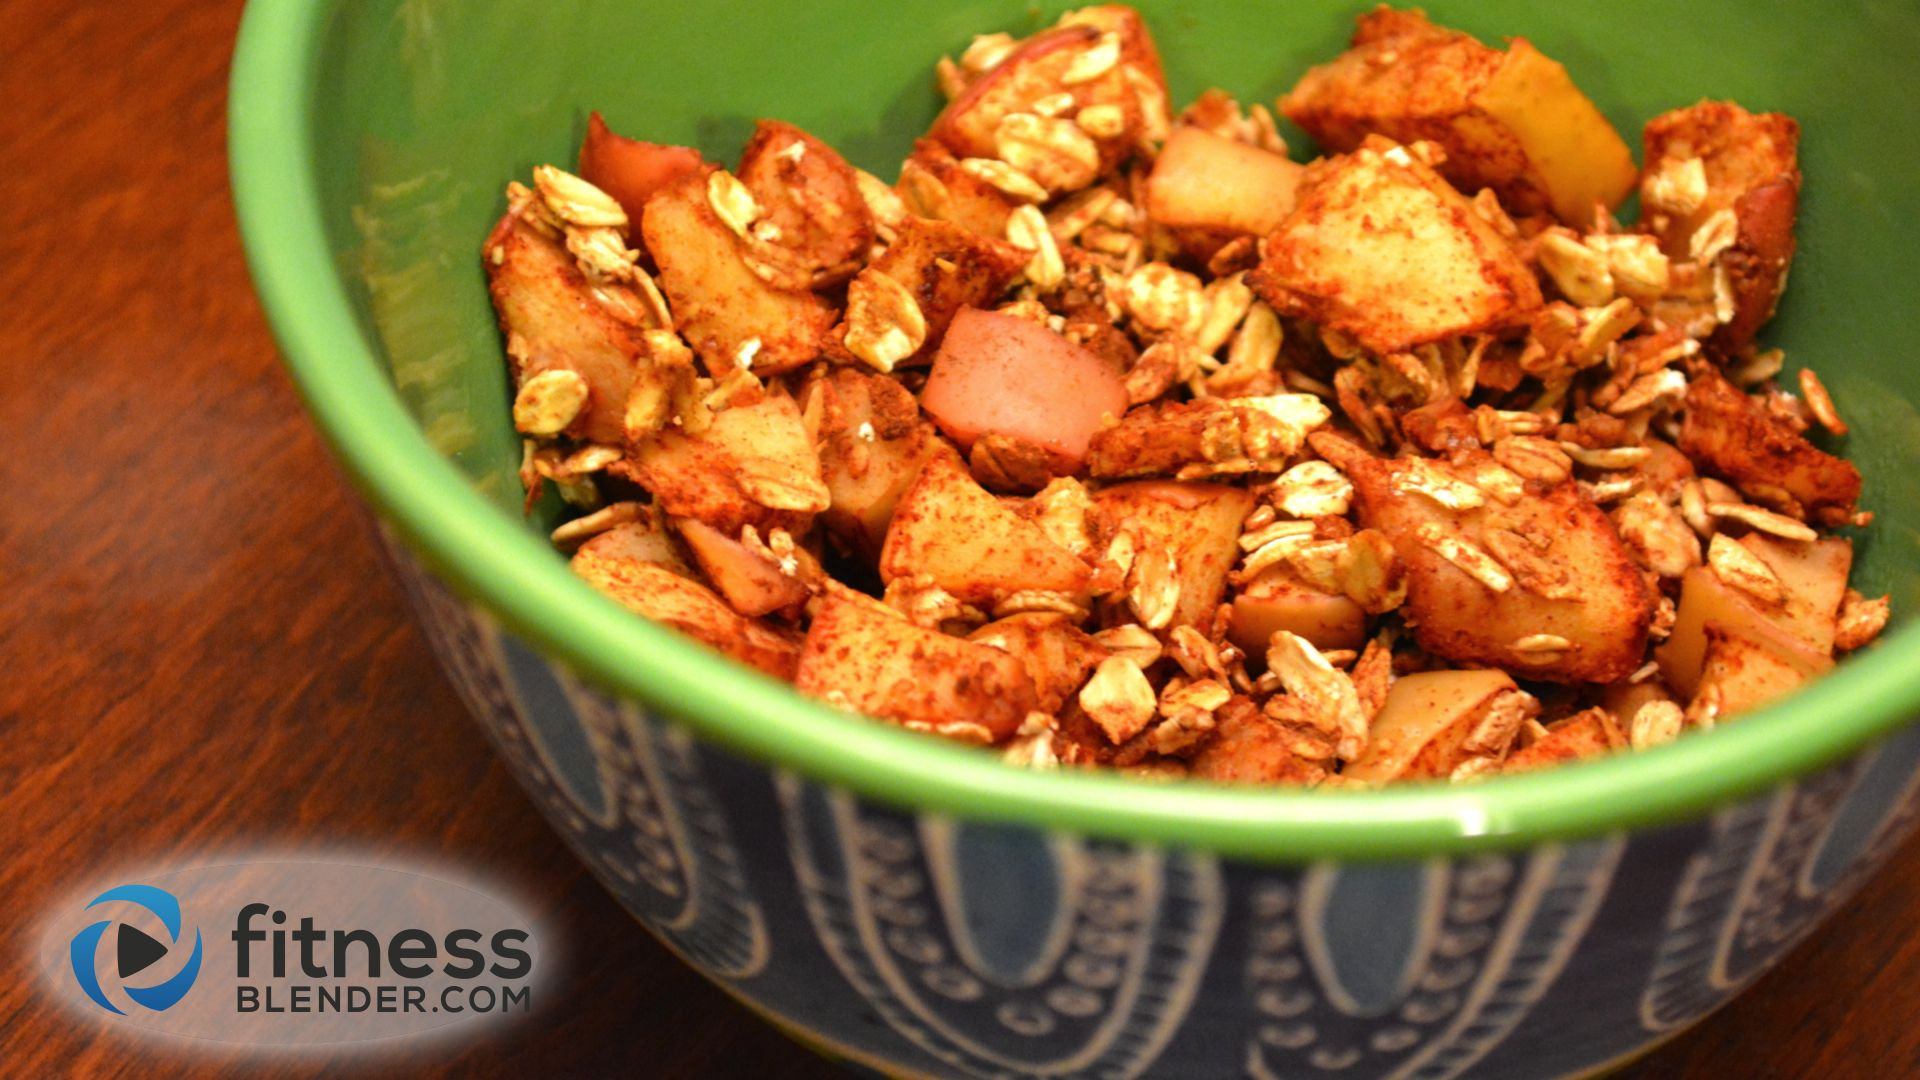 Homemade toasted apple cinnamon oats cereal recipe workouts homemade toasted apple cinnamon oats cereal recipe ccuart Images